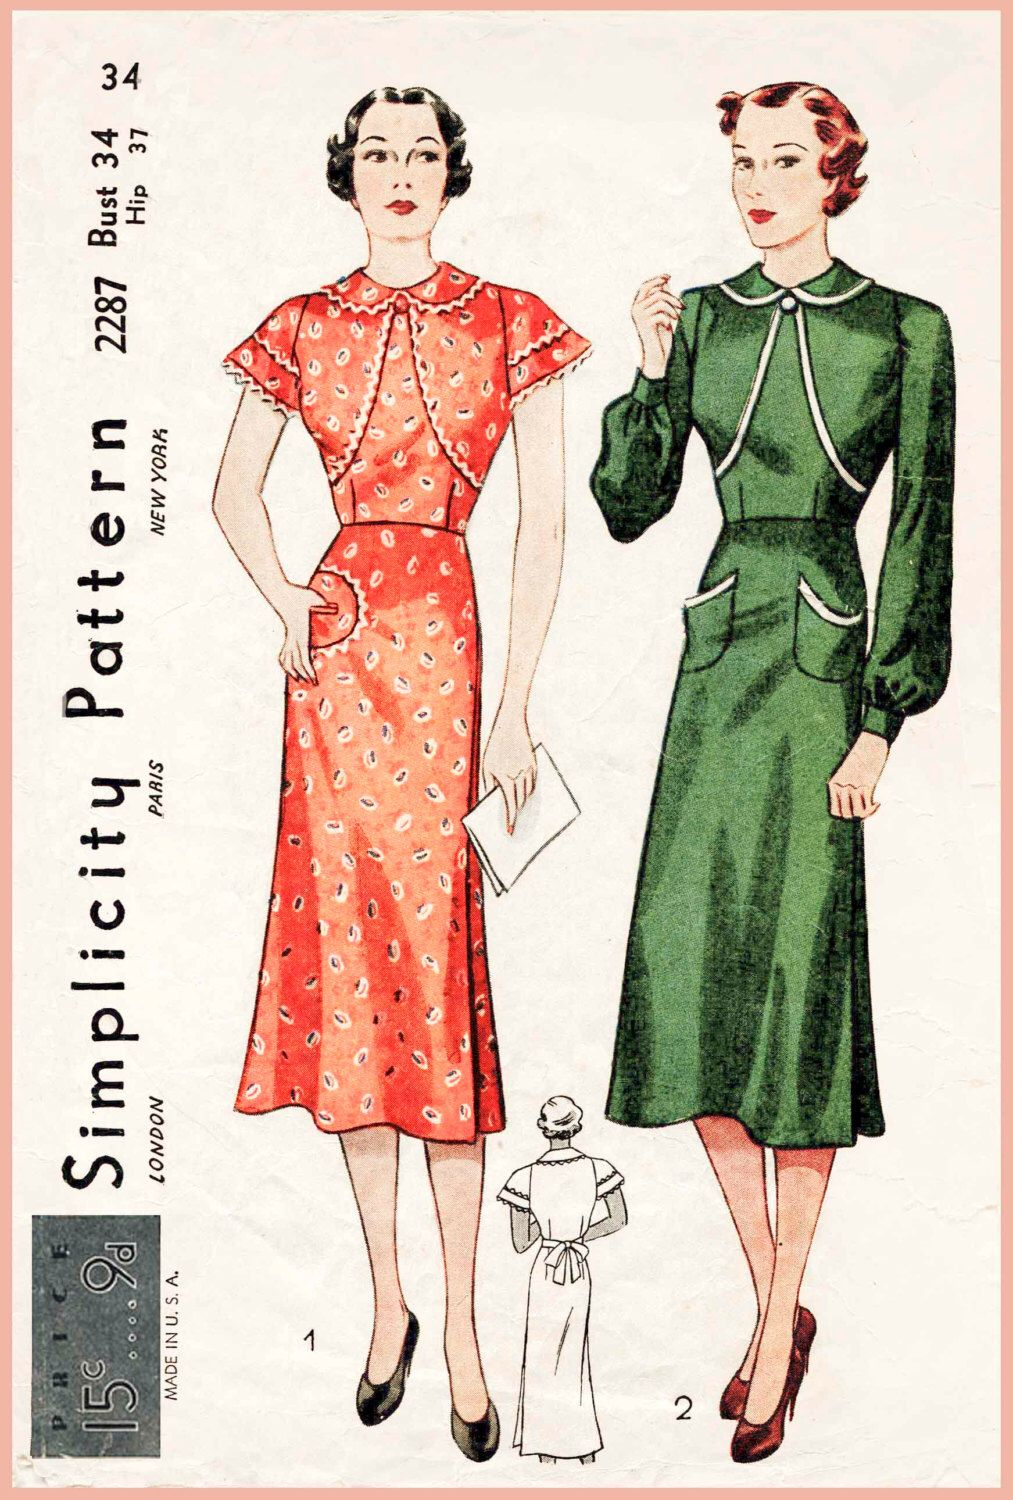 Vintage sewing patterns image collections craft decoration ideas 1930s 30s vintage sewing pattern wrap dress frock or apron bishop 1930s 30s vintage sewing pattern jeuxipadfo Choice Image